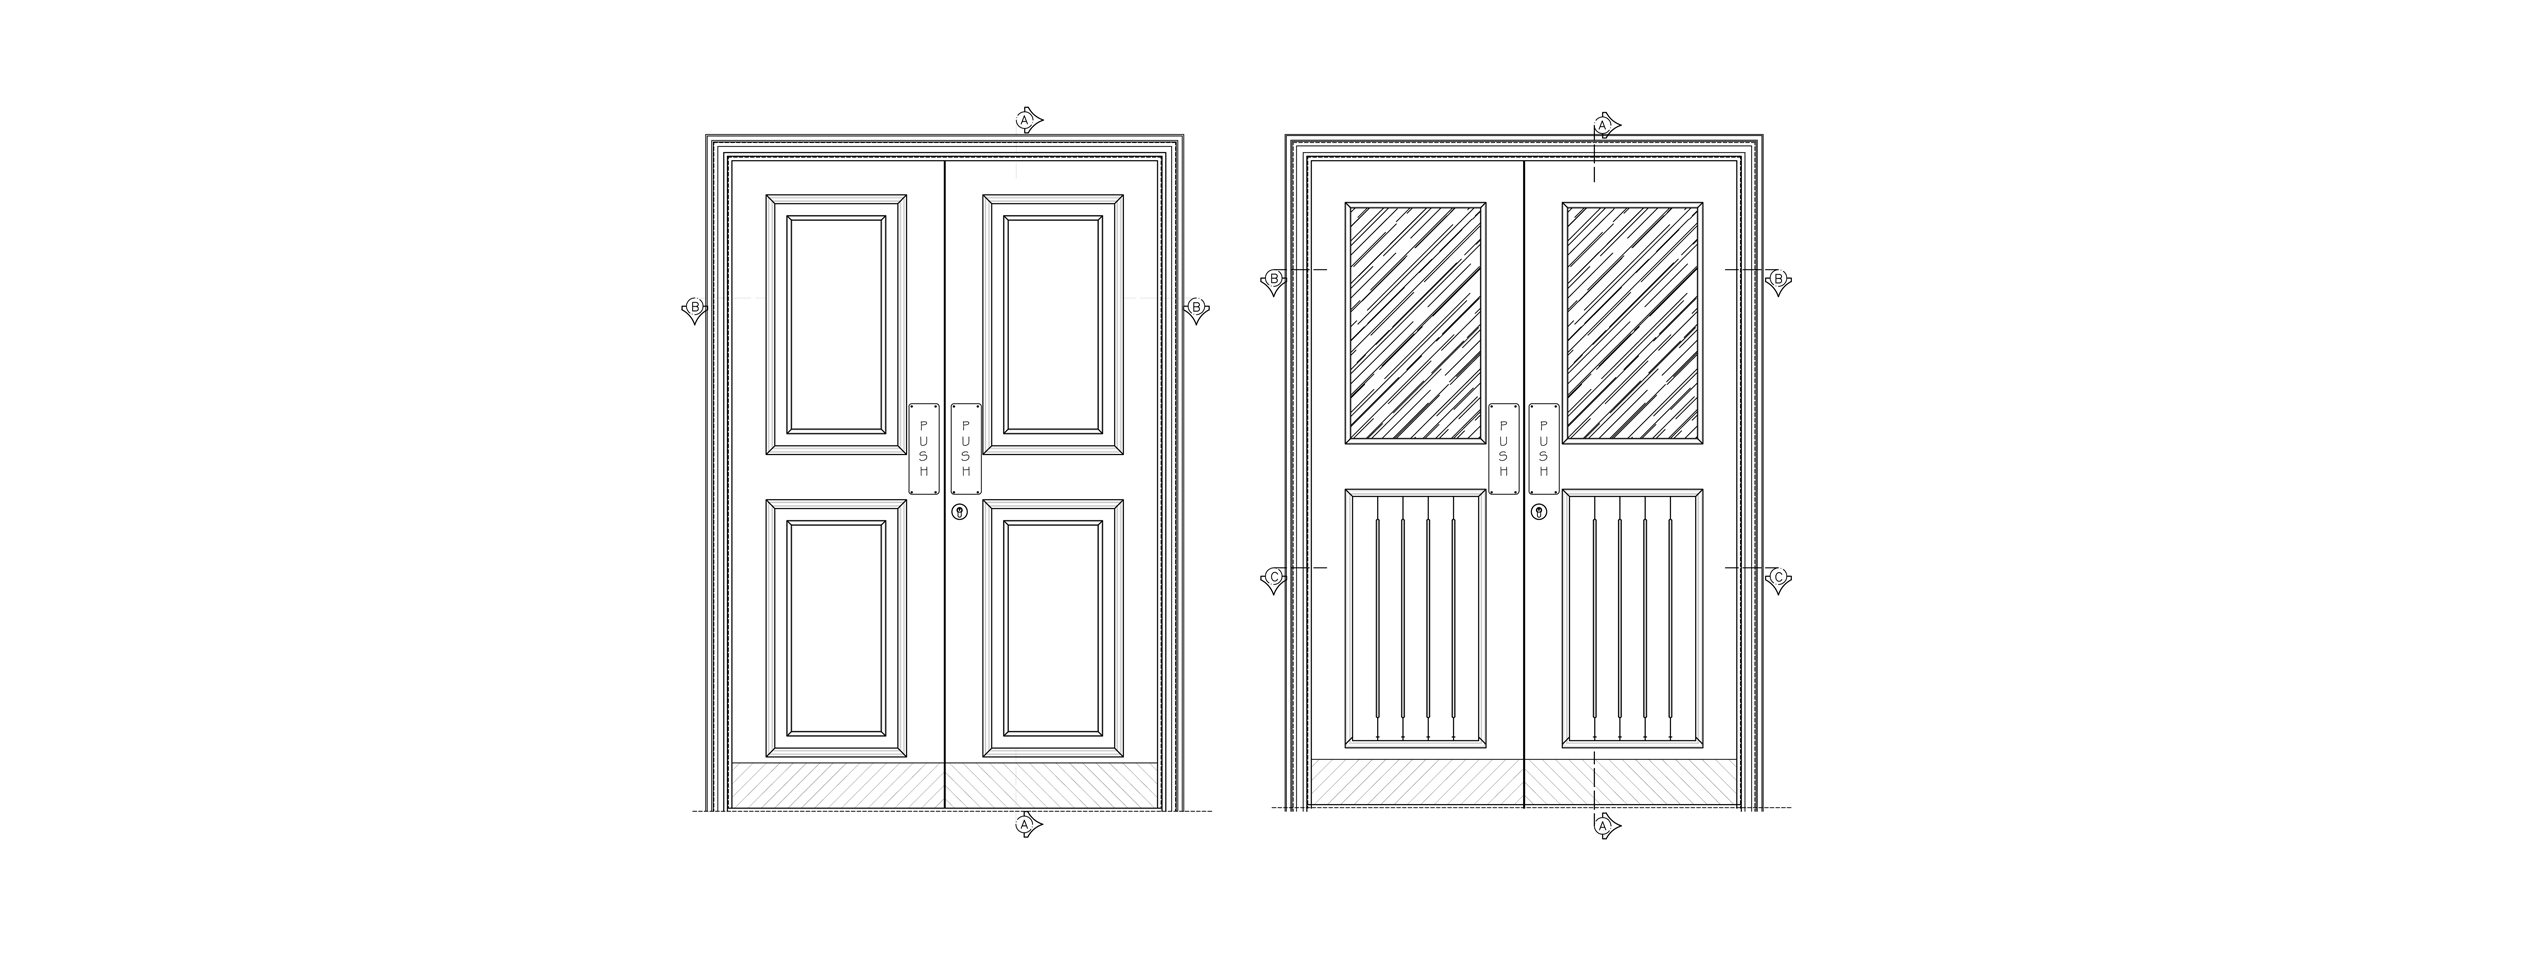 http://www.dwgnet.com/wp-content/uploads/2017/08/now-you-can-free-download-this-wooden-doors-cad-block-with-dimension-and-details-from-www.dwgnet.com_.jpg